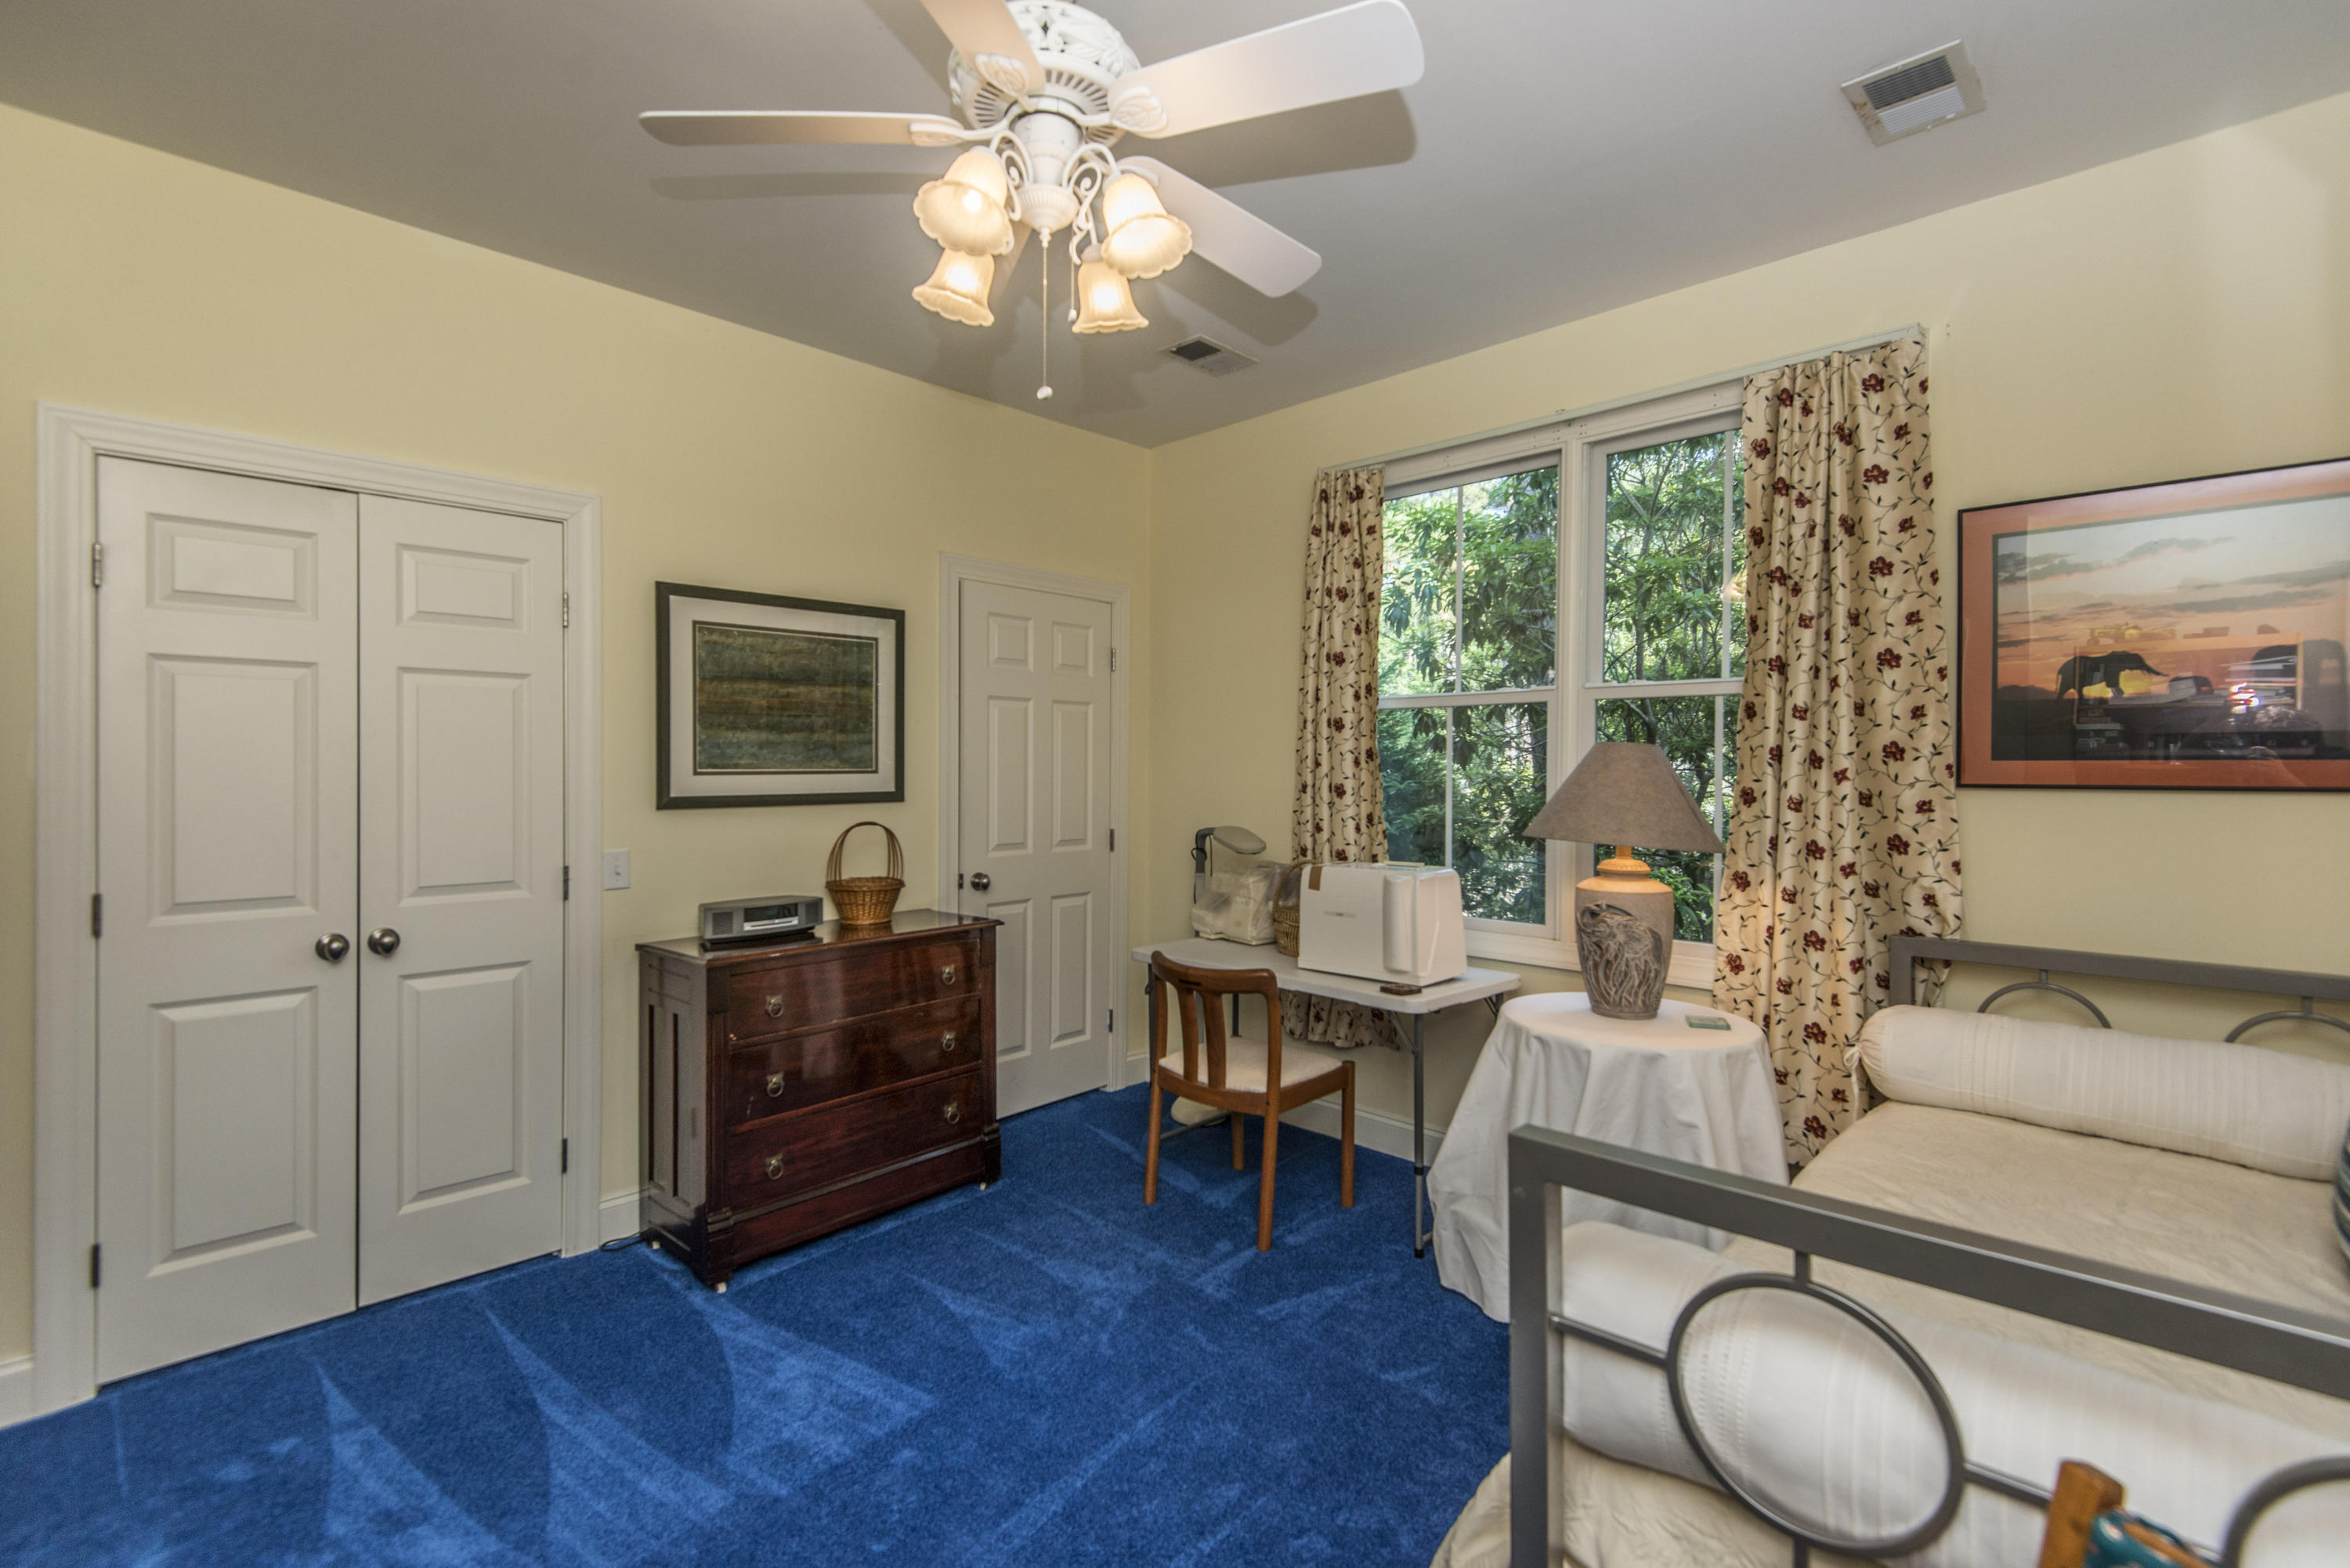 The Villages In St Johns Woods Homes For Sale - 4087 Amy, Johns Island, SC - 46